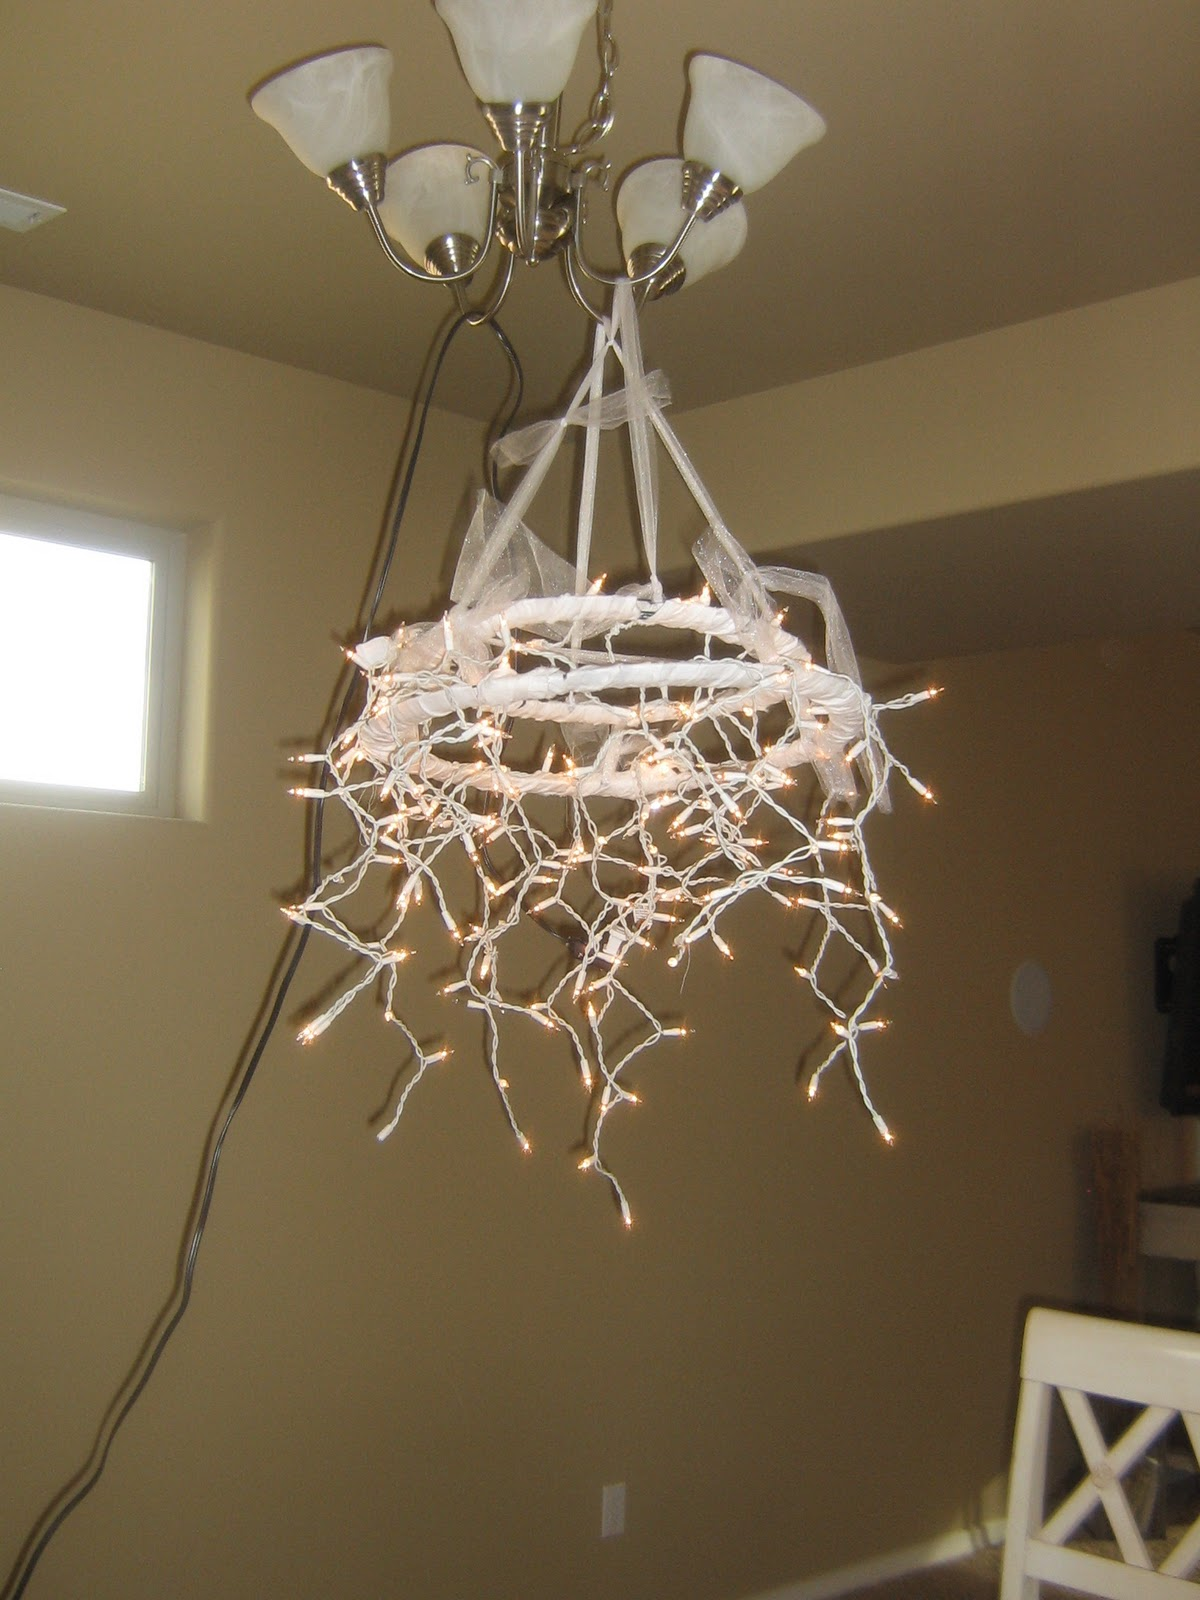 Home is where they love you: Christmas Light Chandelier